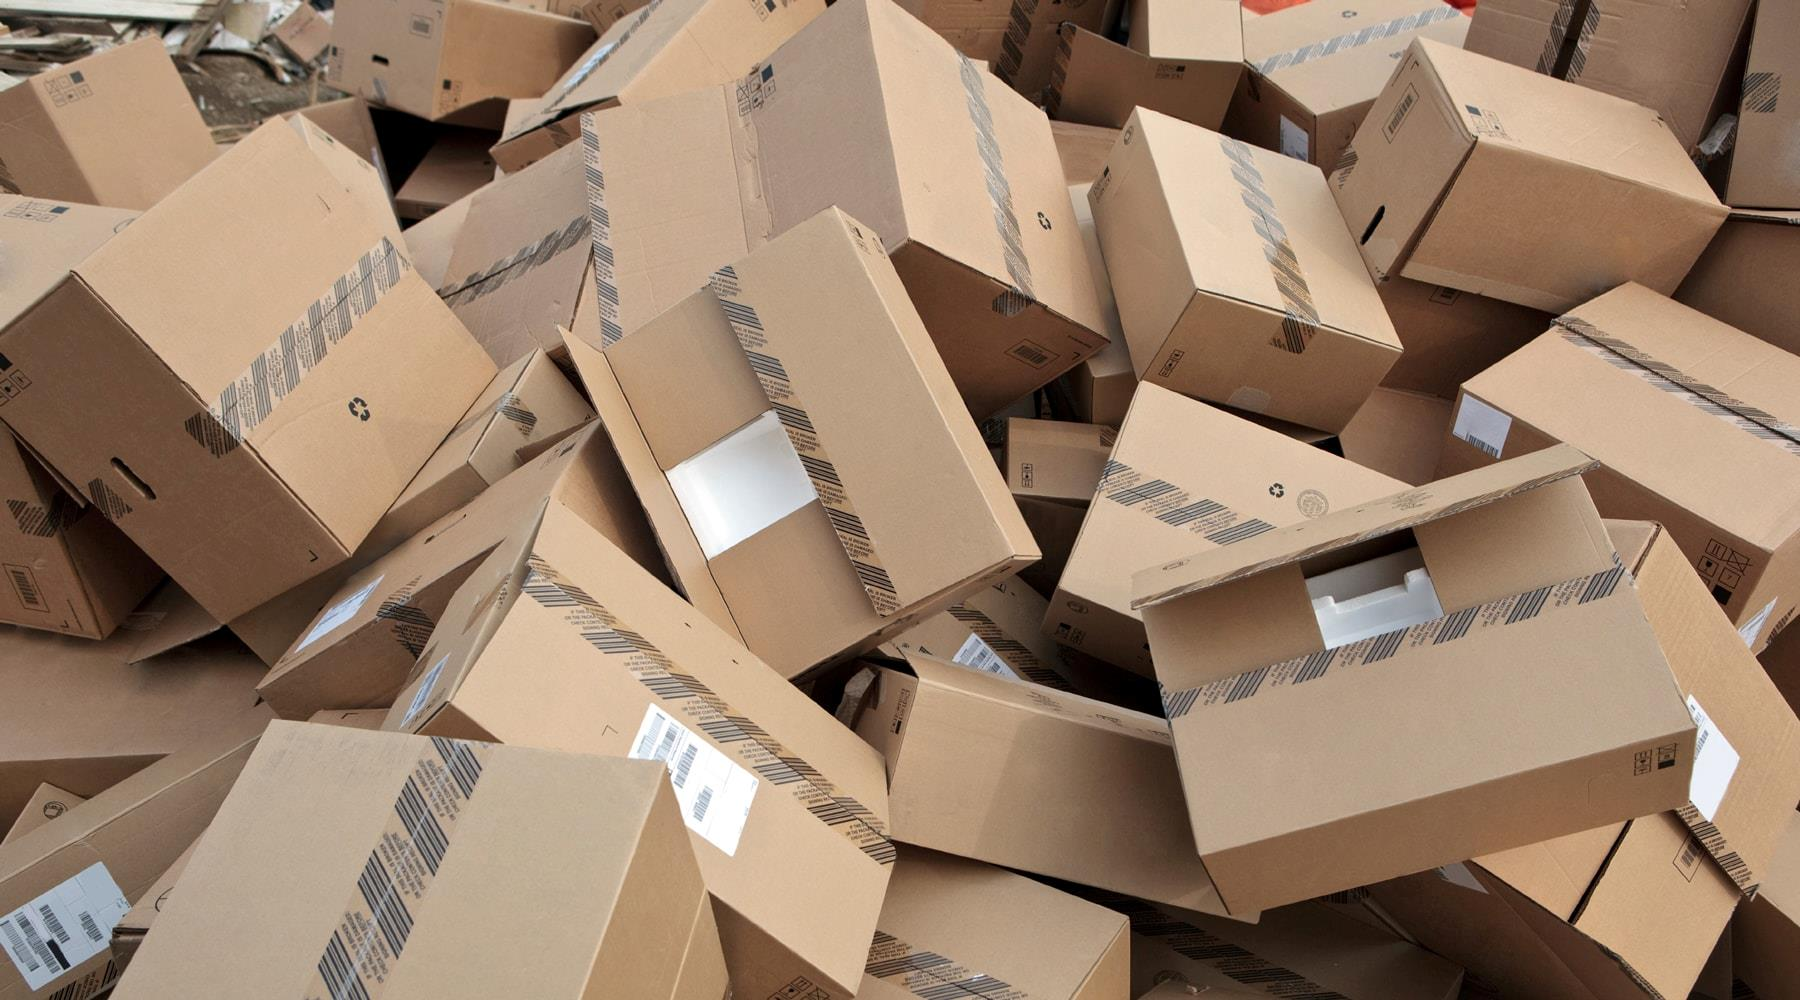 Cardboard boxes at the landfill